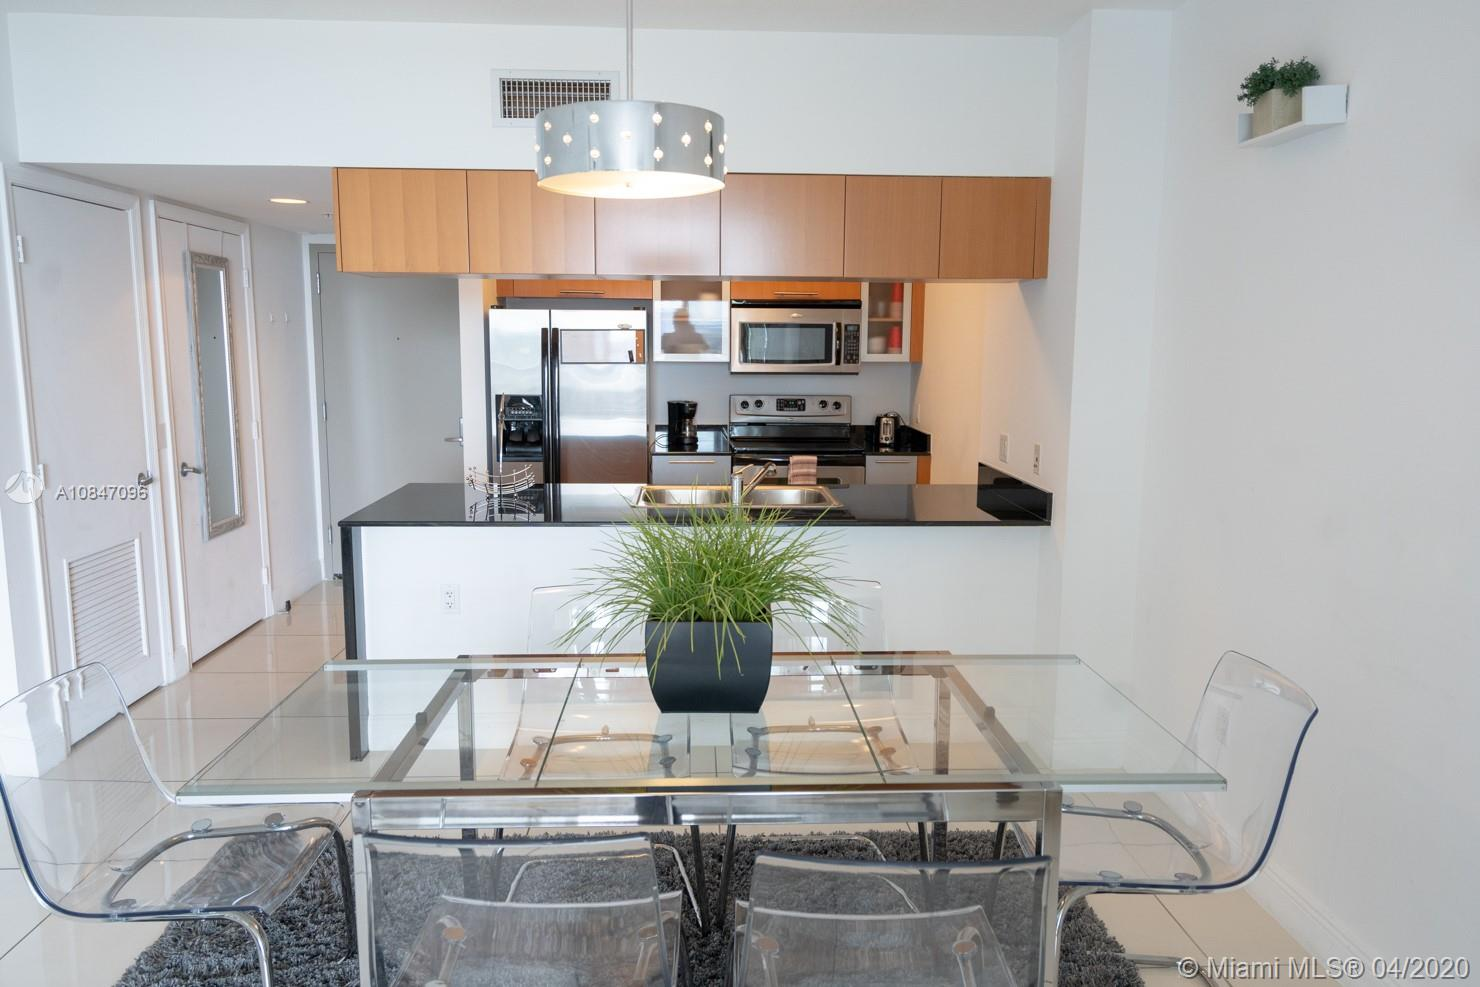 1750 N Bayshore Dr # 3211, Miami, Florida 33132, 1 Bedroom Bedrooms, ,1 BathroomBathrooms,Residential,For Sale,1750 N Bayshore Dr # 3211,A10847096